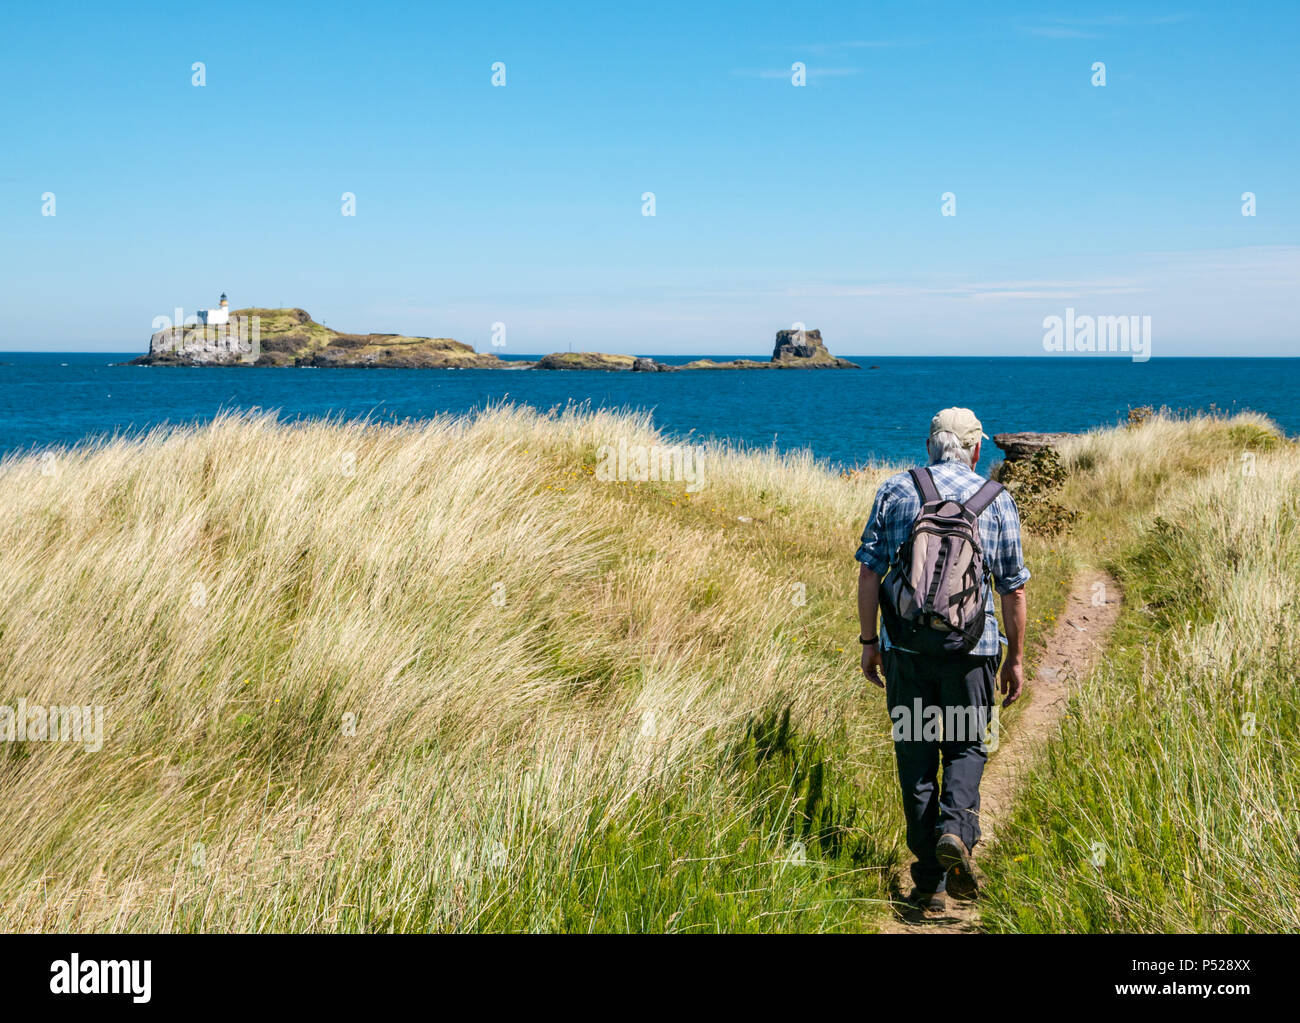 John Muir Way, East Lothian, Scotland, UK, 24th June 2018. UK Weather: A warm sunny day with a light breeze made perfect conditions for Sunday leisure pursuits on the coast today. An older man walks along the coastal path with a view of the lighthouse on Fidra Island, reputedly the inspiration for Robert Louis Stevenson's novel Treasure Island. Credit: Sally Anderson/Alamy Live News Stock Photo